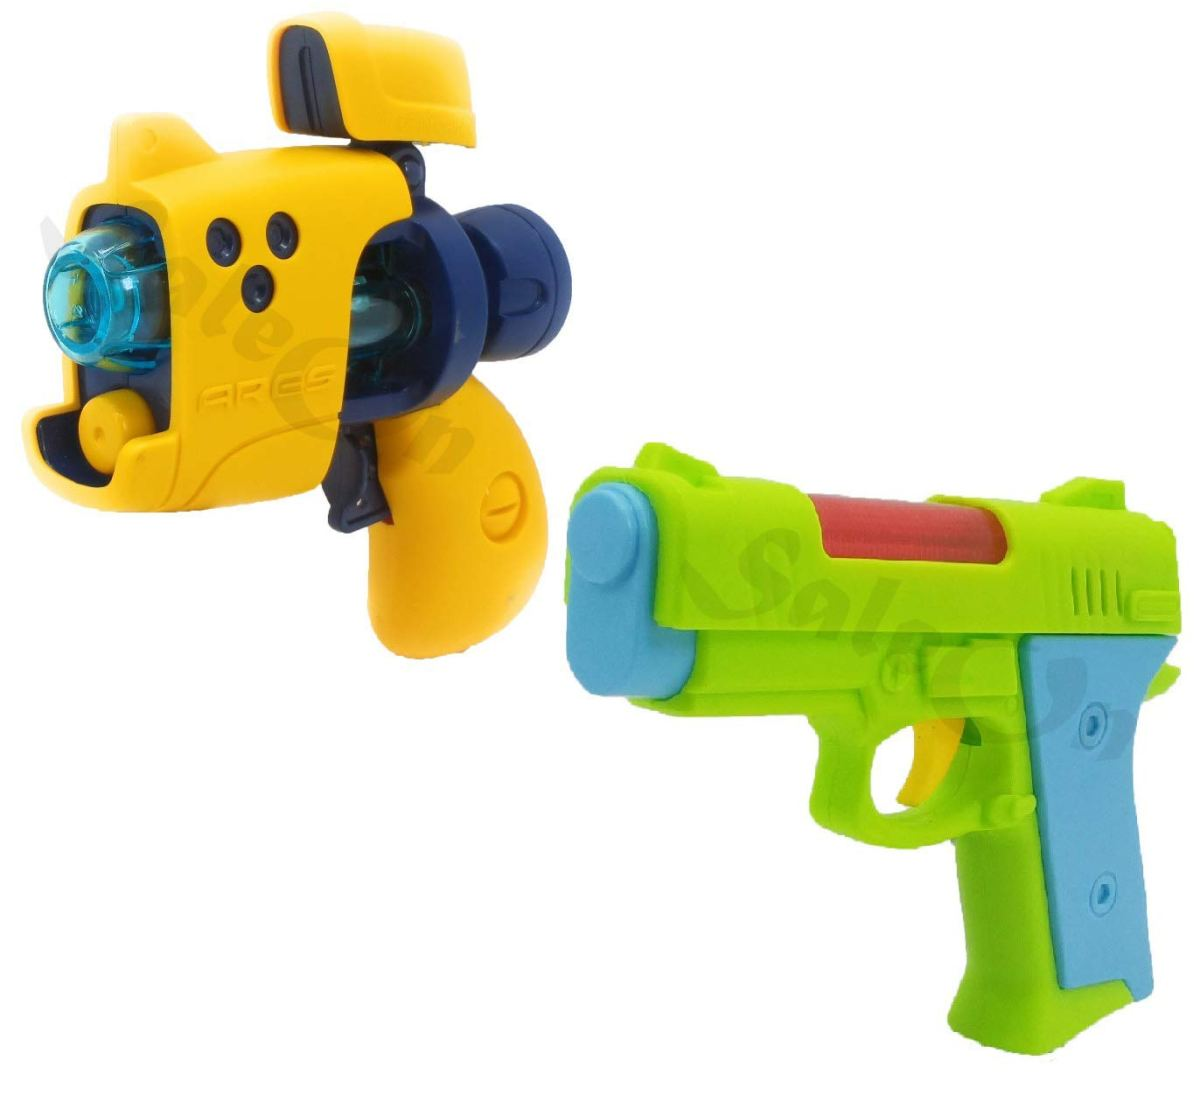 SaleOn™ Light and Music Gun Toy Plastic Realistic Sound and Light Effect (Set of 2)-1072